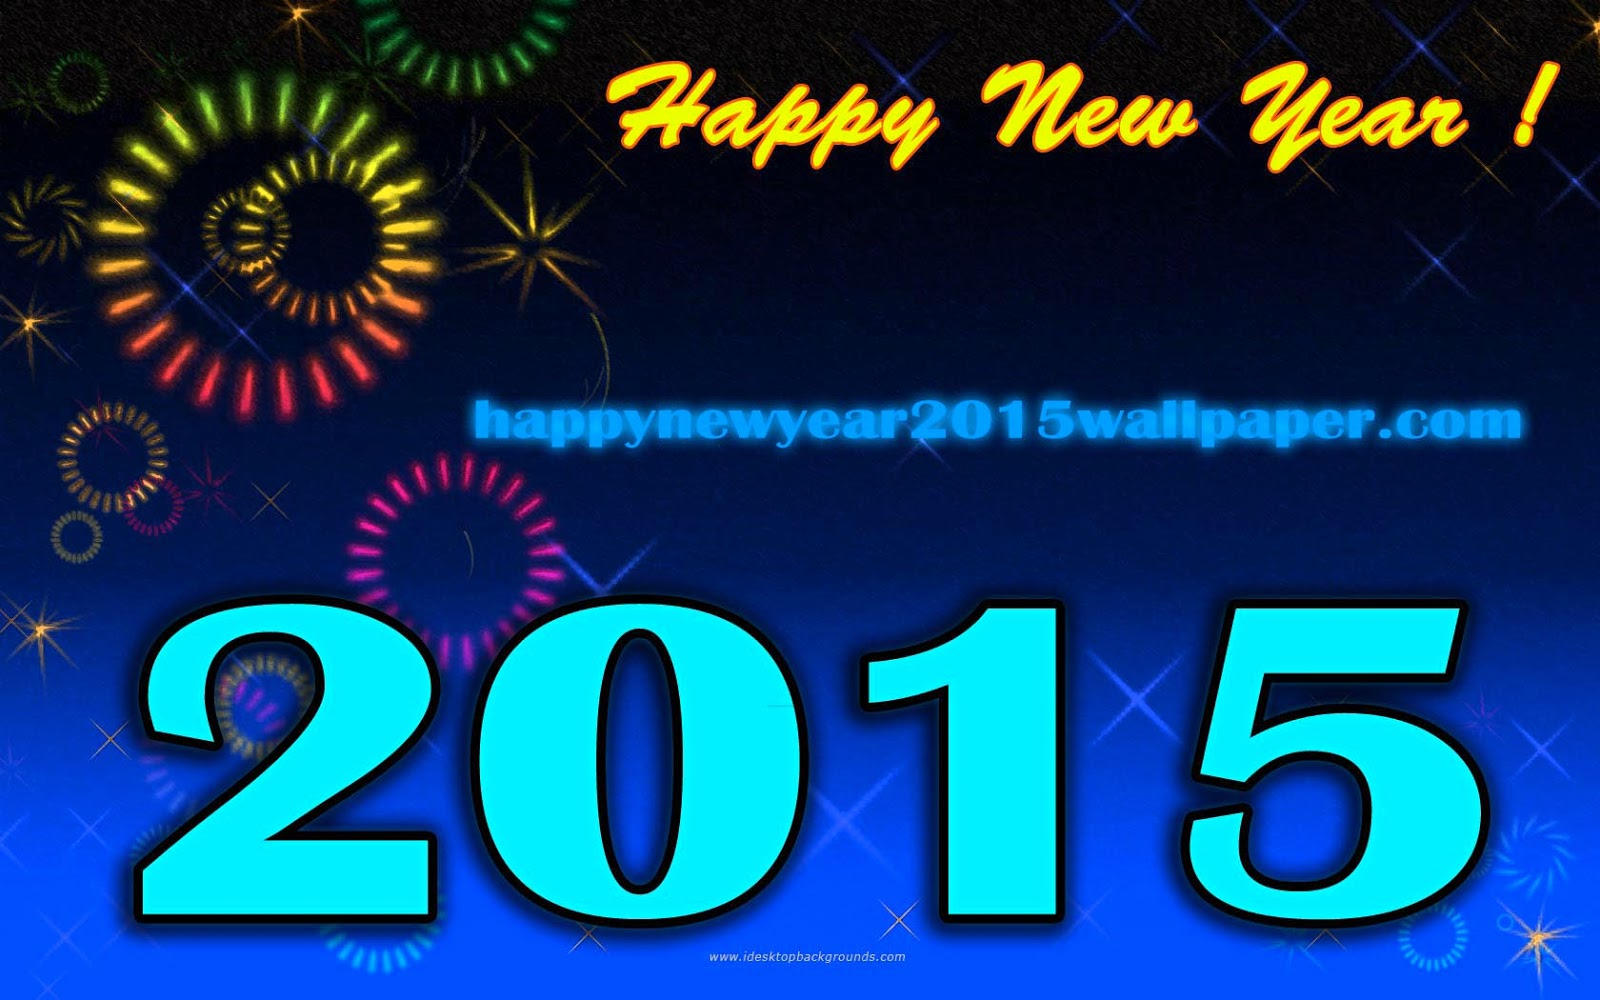 Happy New Year 2015.9 Happy New Year Sinhala Sms Text Messages 2014